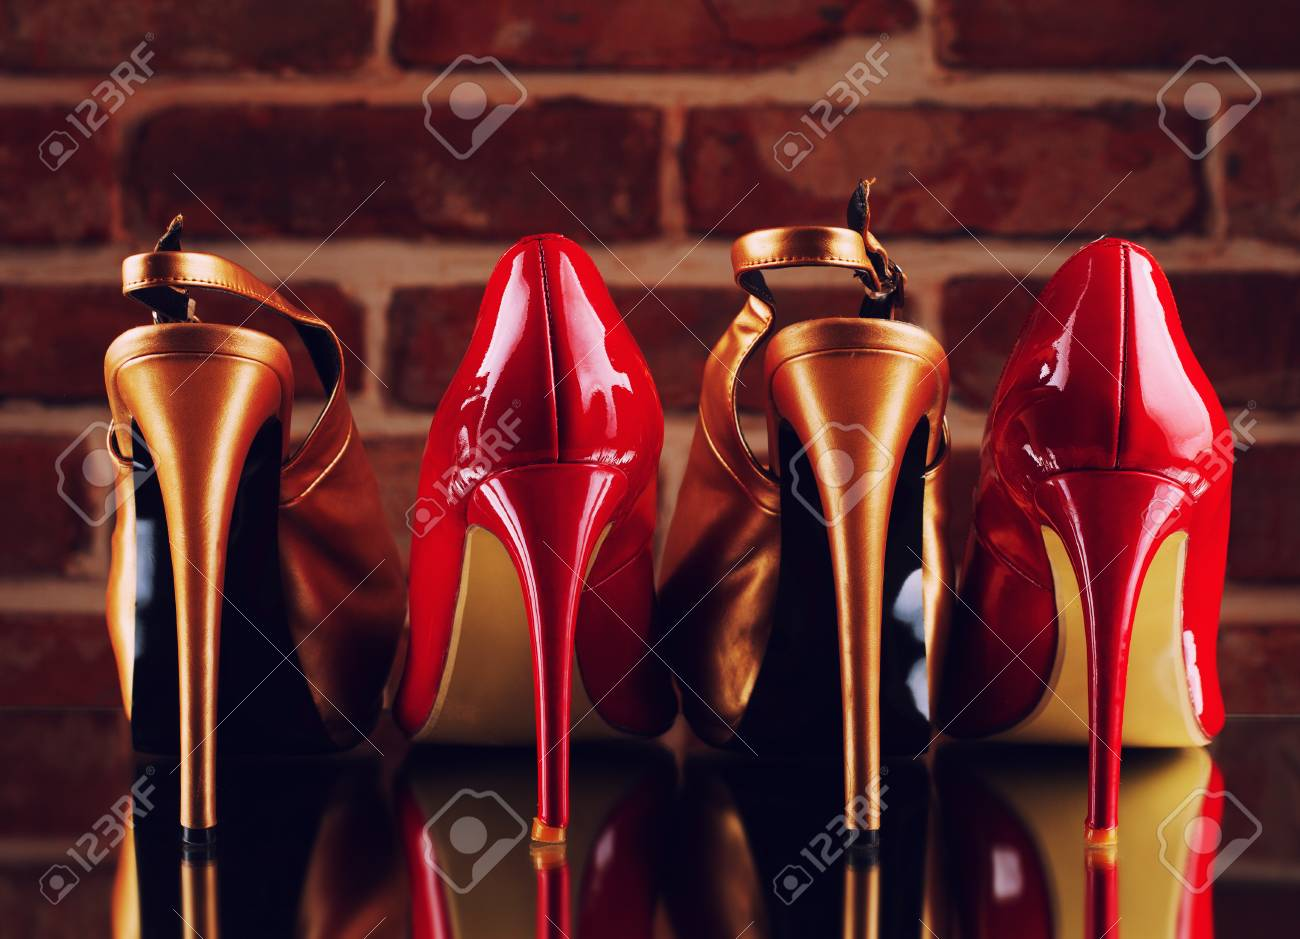 cf62cdf71ec Red and gold high heels on the red brick wall background